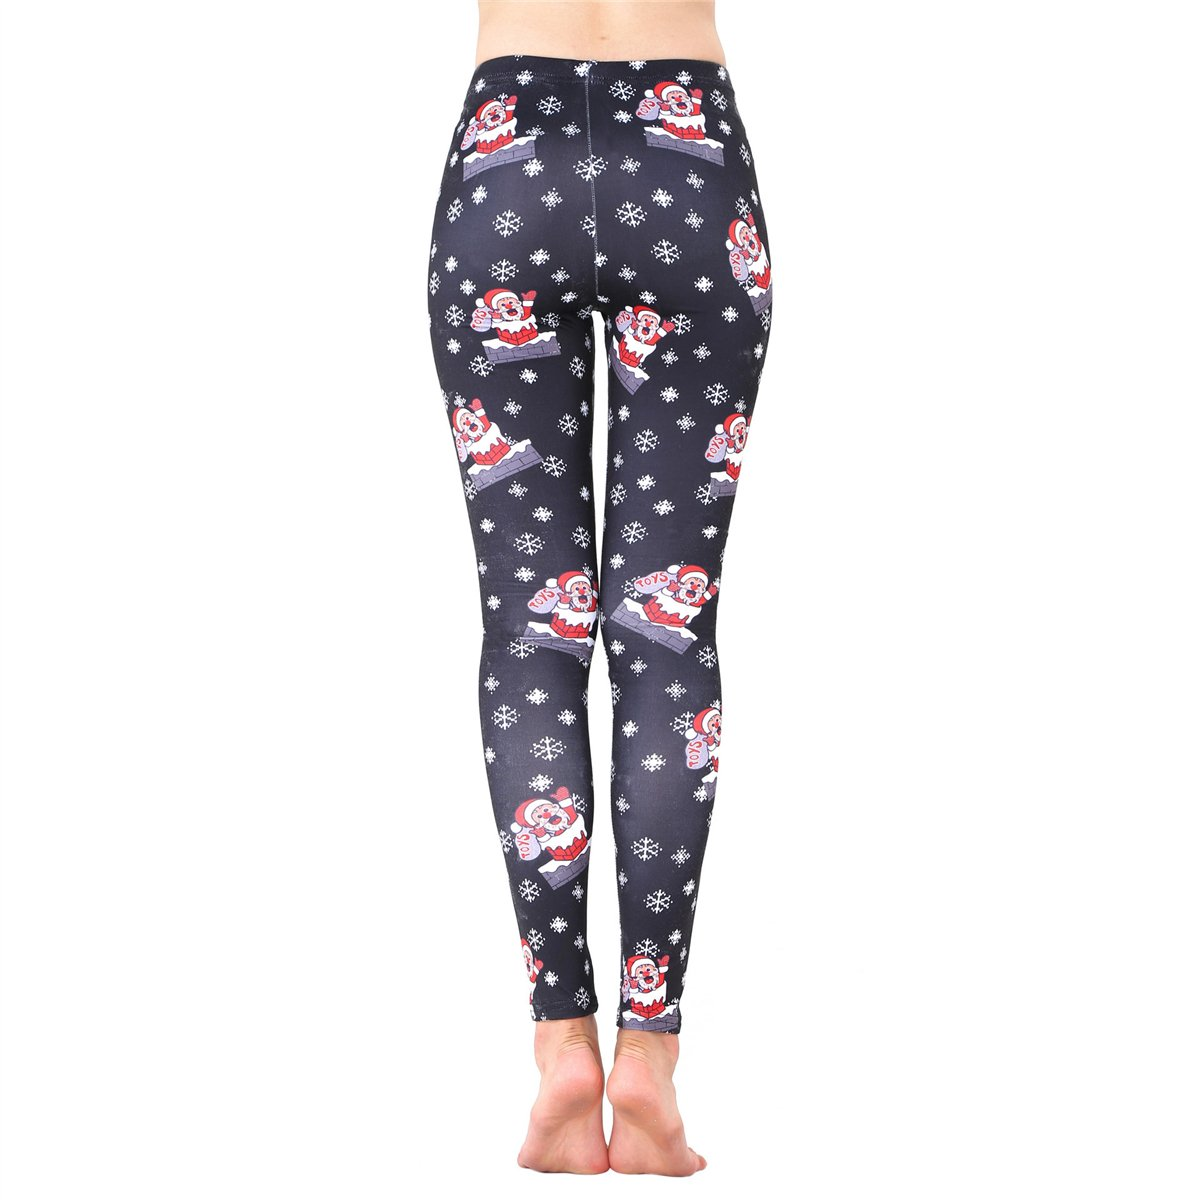 dc75d4d4a0651 JUNVEVOOL Santa Claus Snowflake Print Leggings Womens Ultra Soft Brushed Christmas  Pants at Amazon Women's Clothing store: